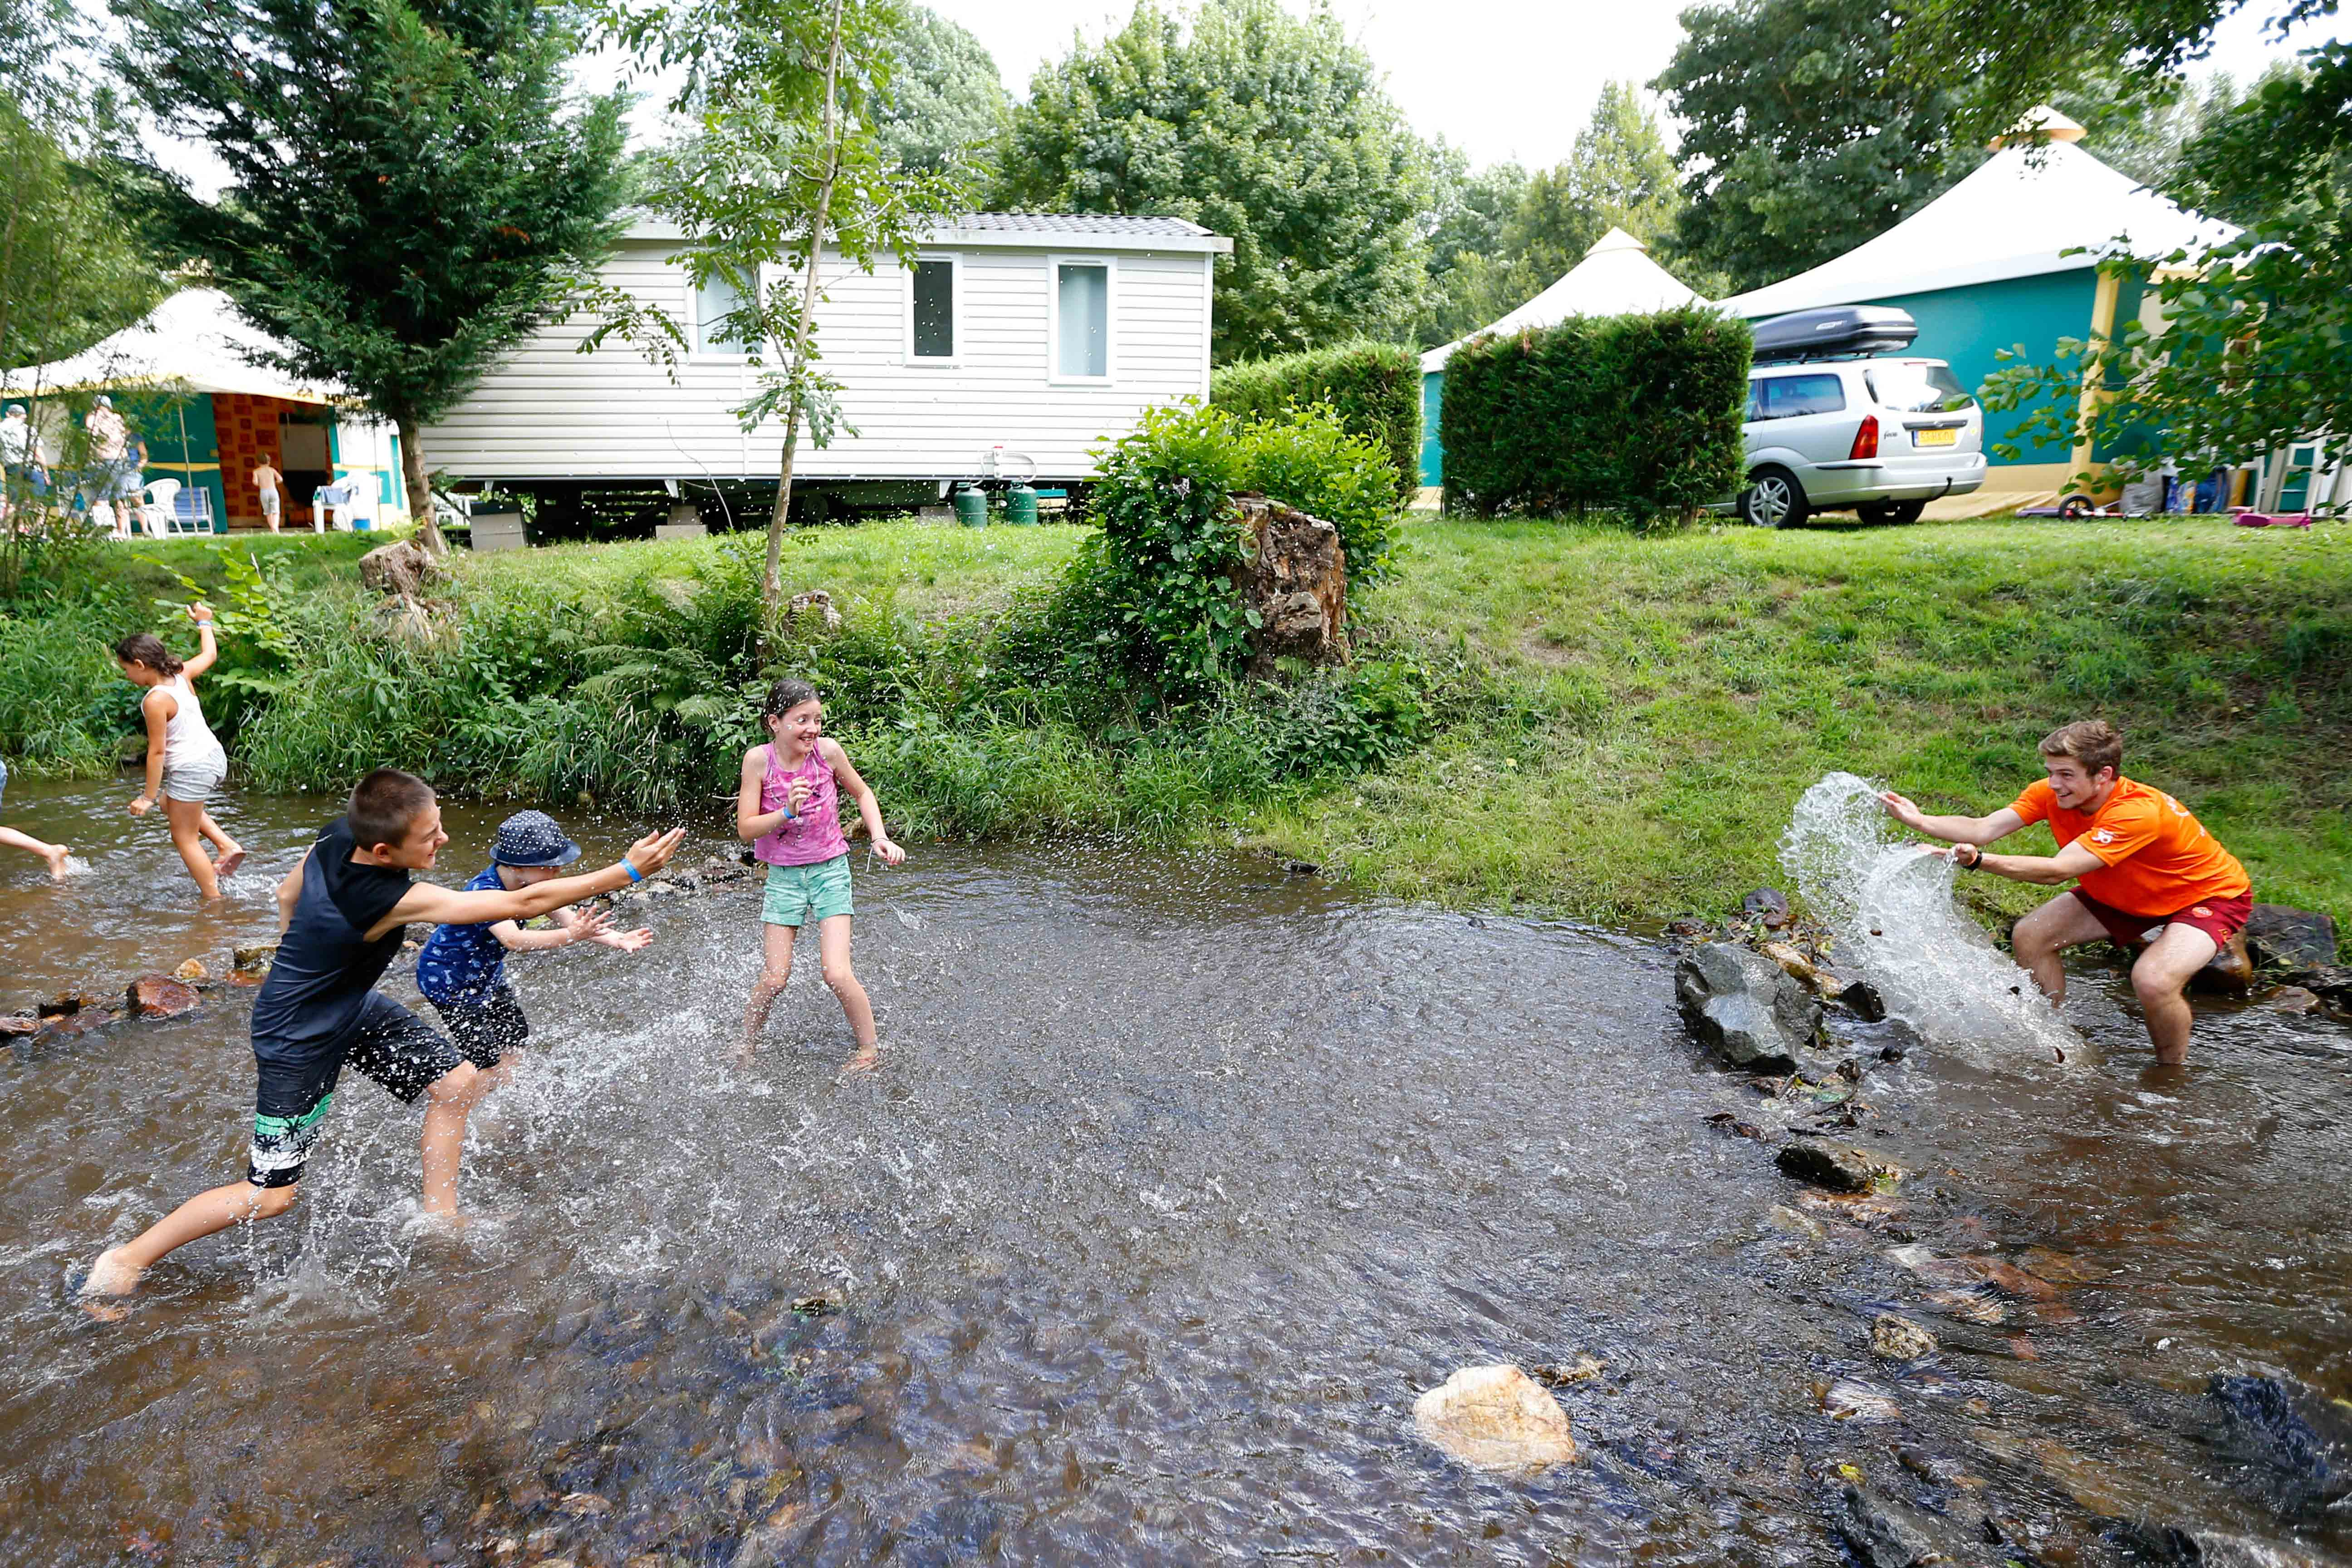 Camping Le Giessen udogodenienia